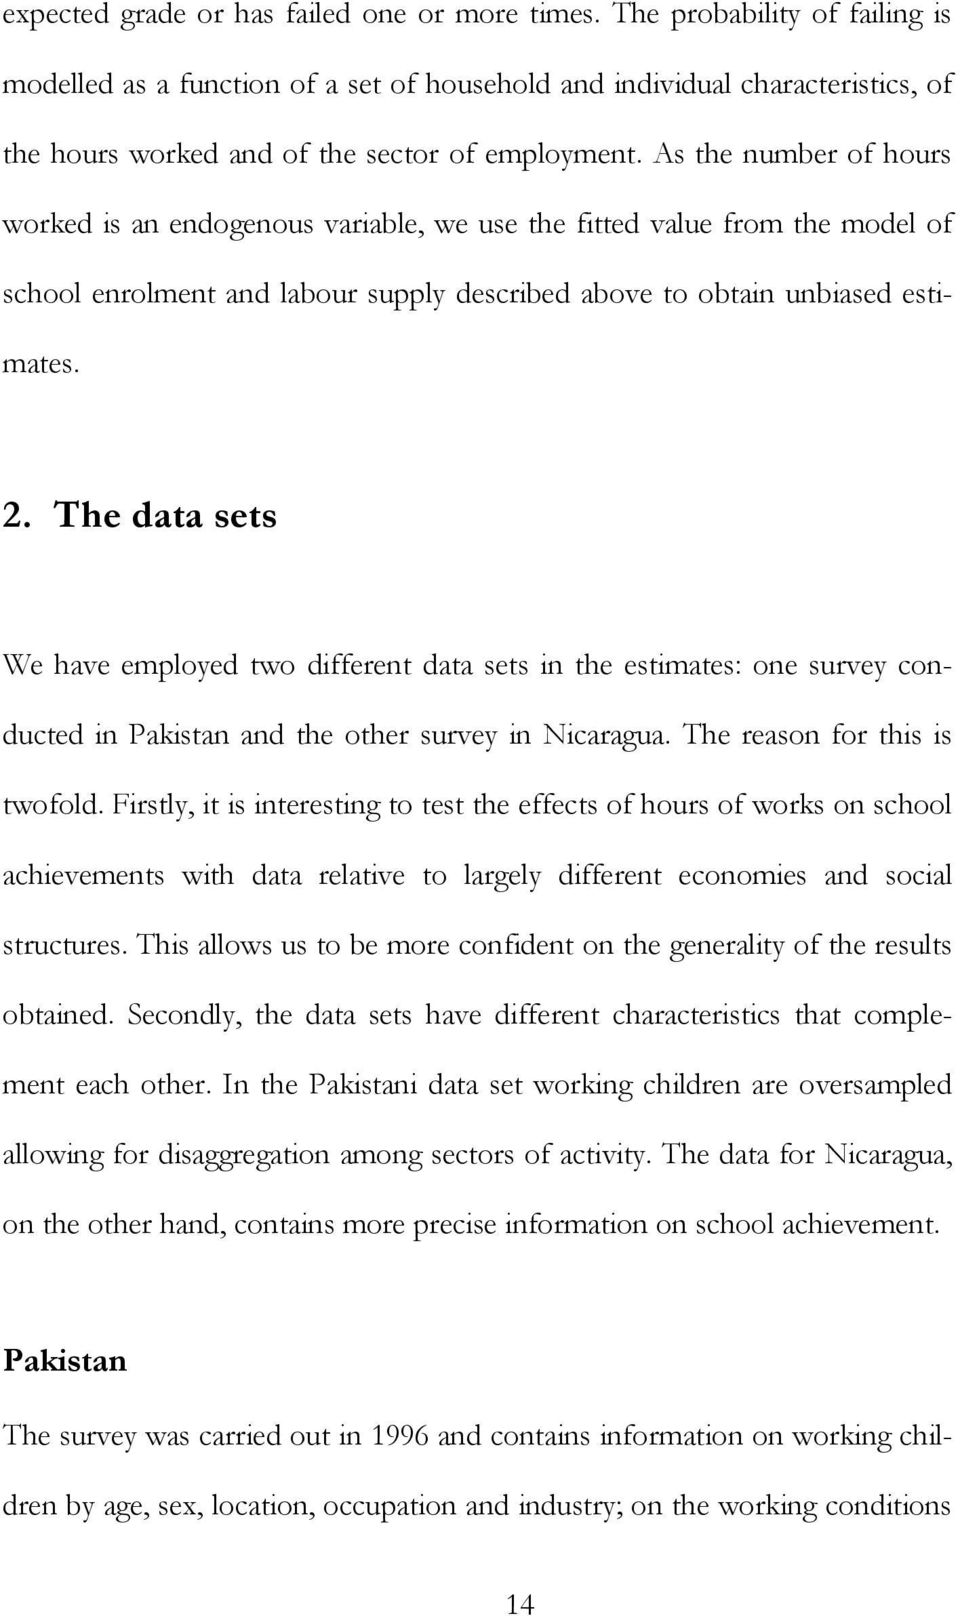 As the number of hours worked is an endogenous variable, we use the fitted value from the model of school enrolment and labour supply described above to obtain unbiased estimates. 2.